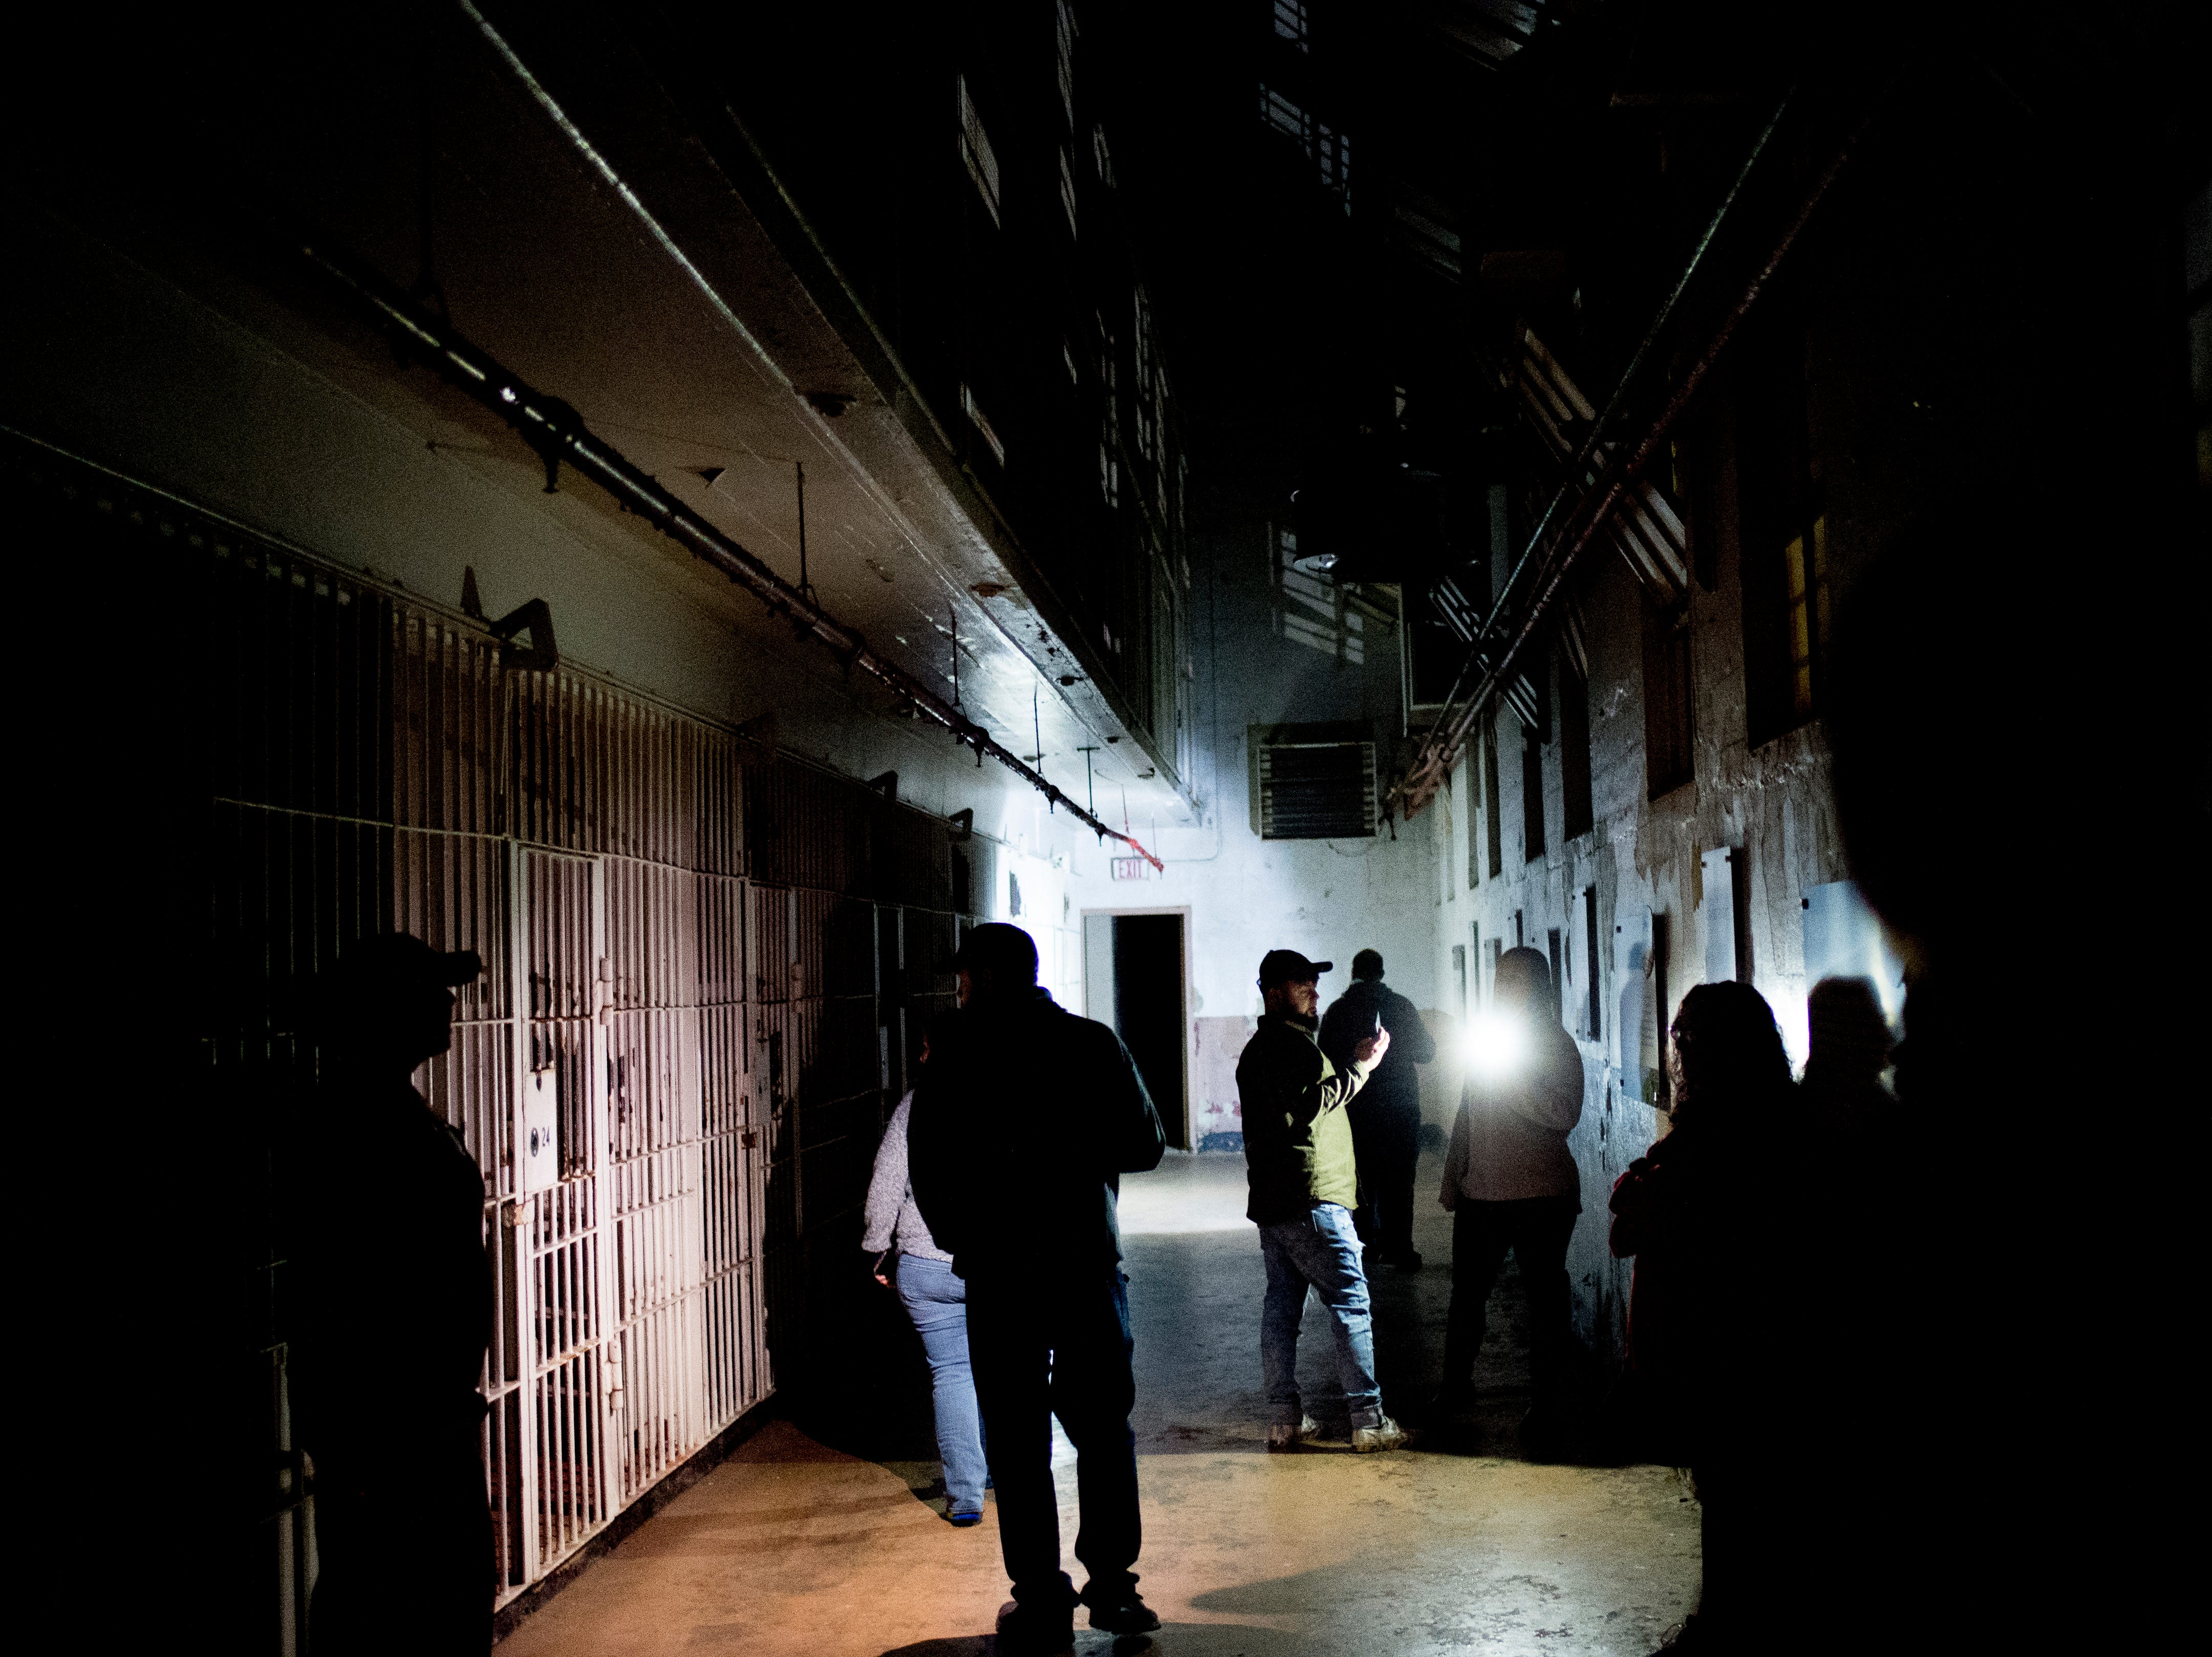 Visitors gather in one of the large cell blocks during a paranormal flashlight tour of Brushy Mountain State Penitentiary in Petros, Tennessee on Tuesday, October 16, 2018.